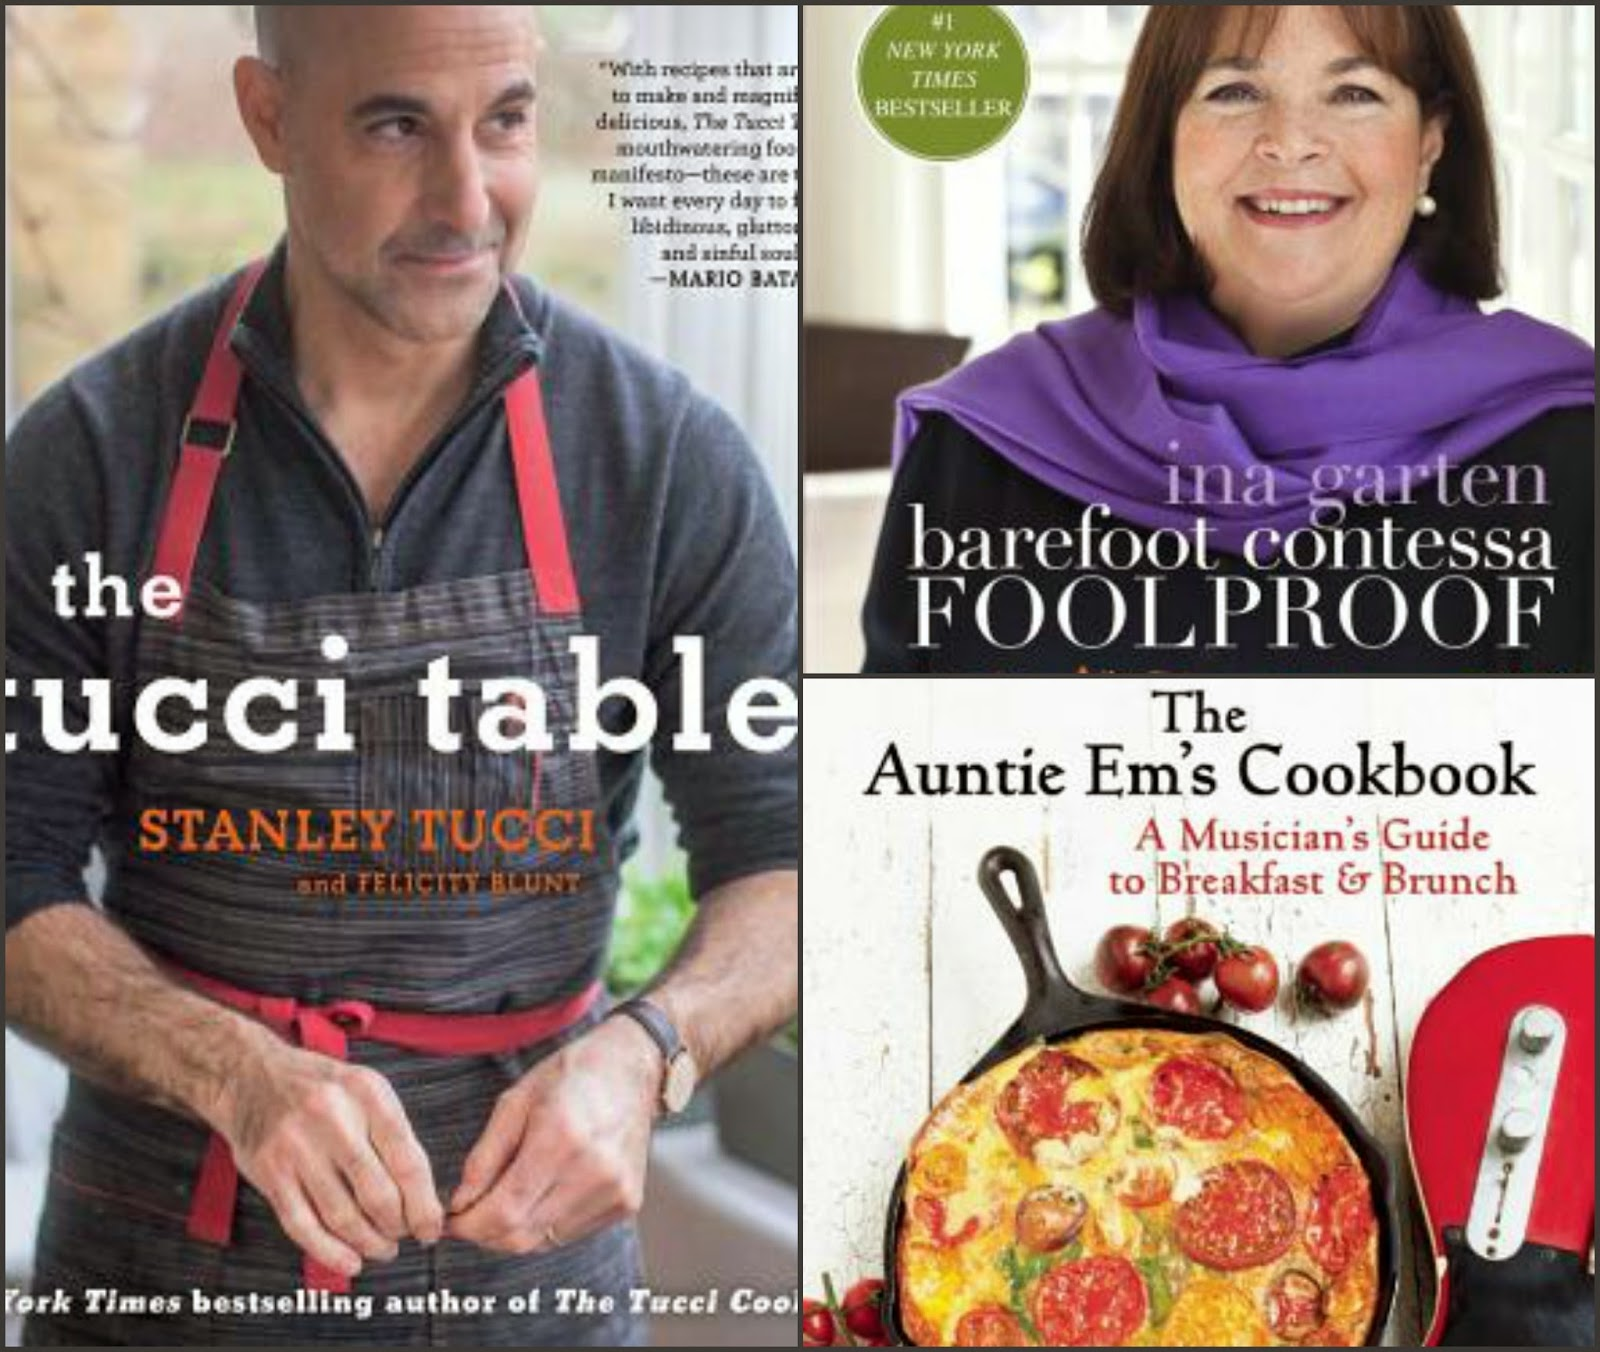 Barefoot Contessa Foolproof, The Tucci Table, The Auntie Em's Cookbook